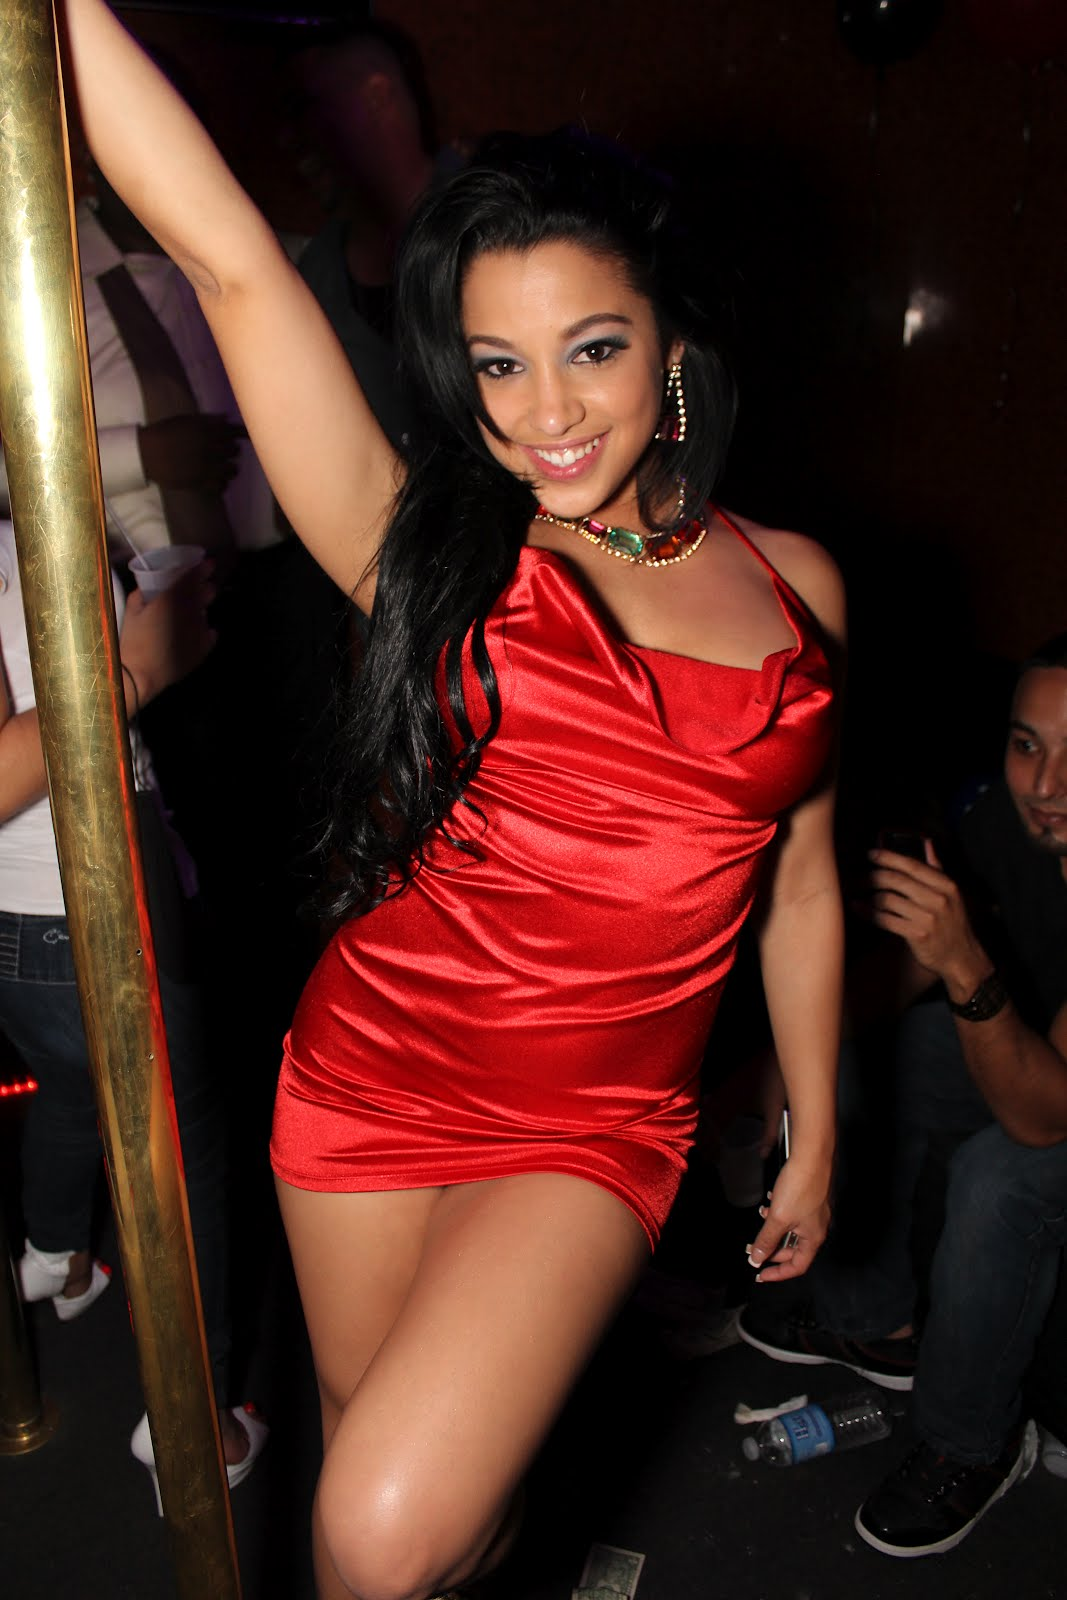 porn star at strip club What are the best strip clubs worth visiting in the bay area?